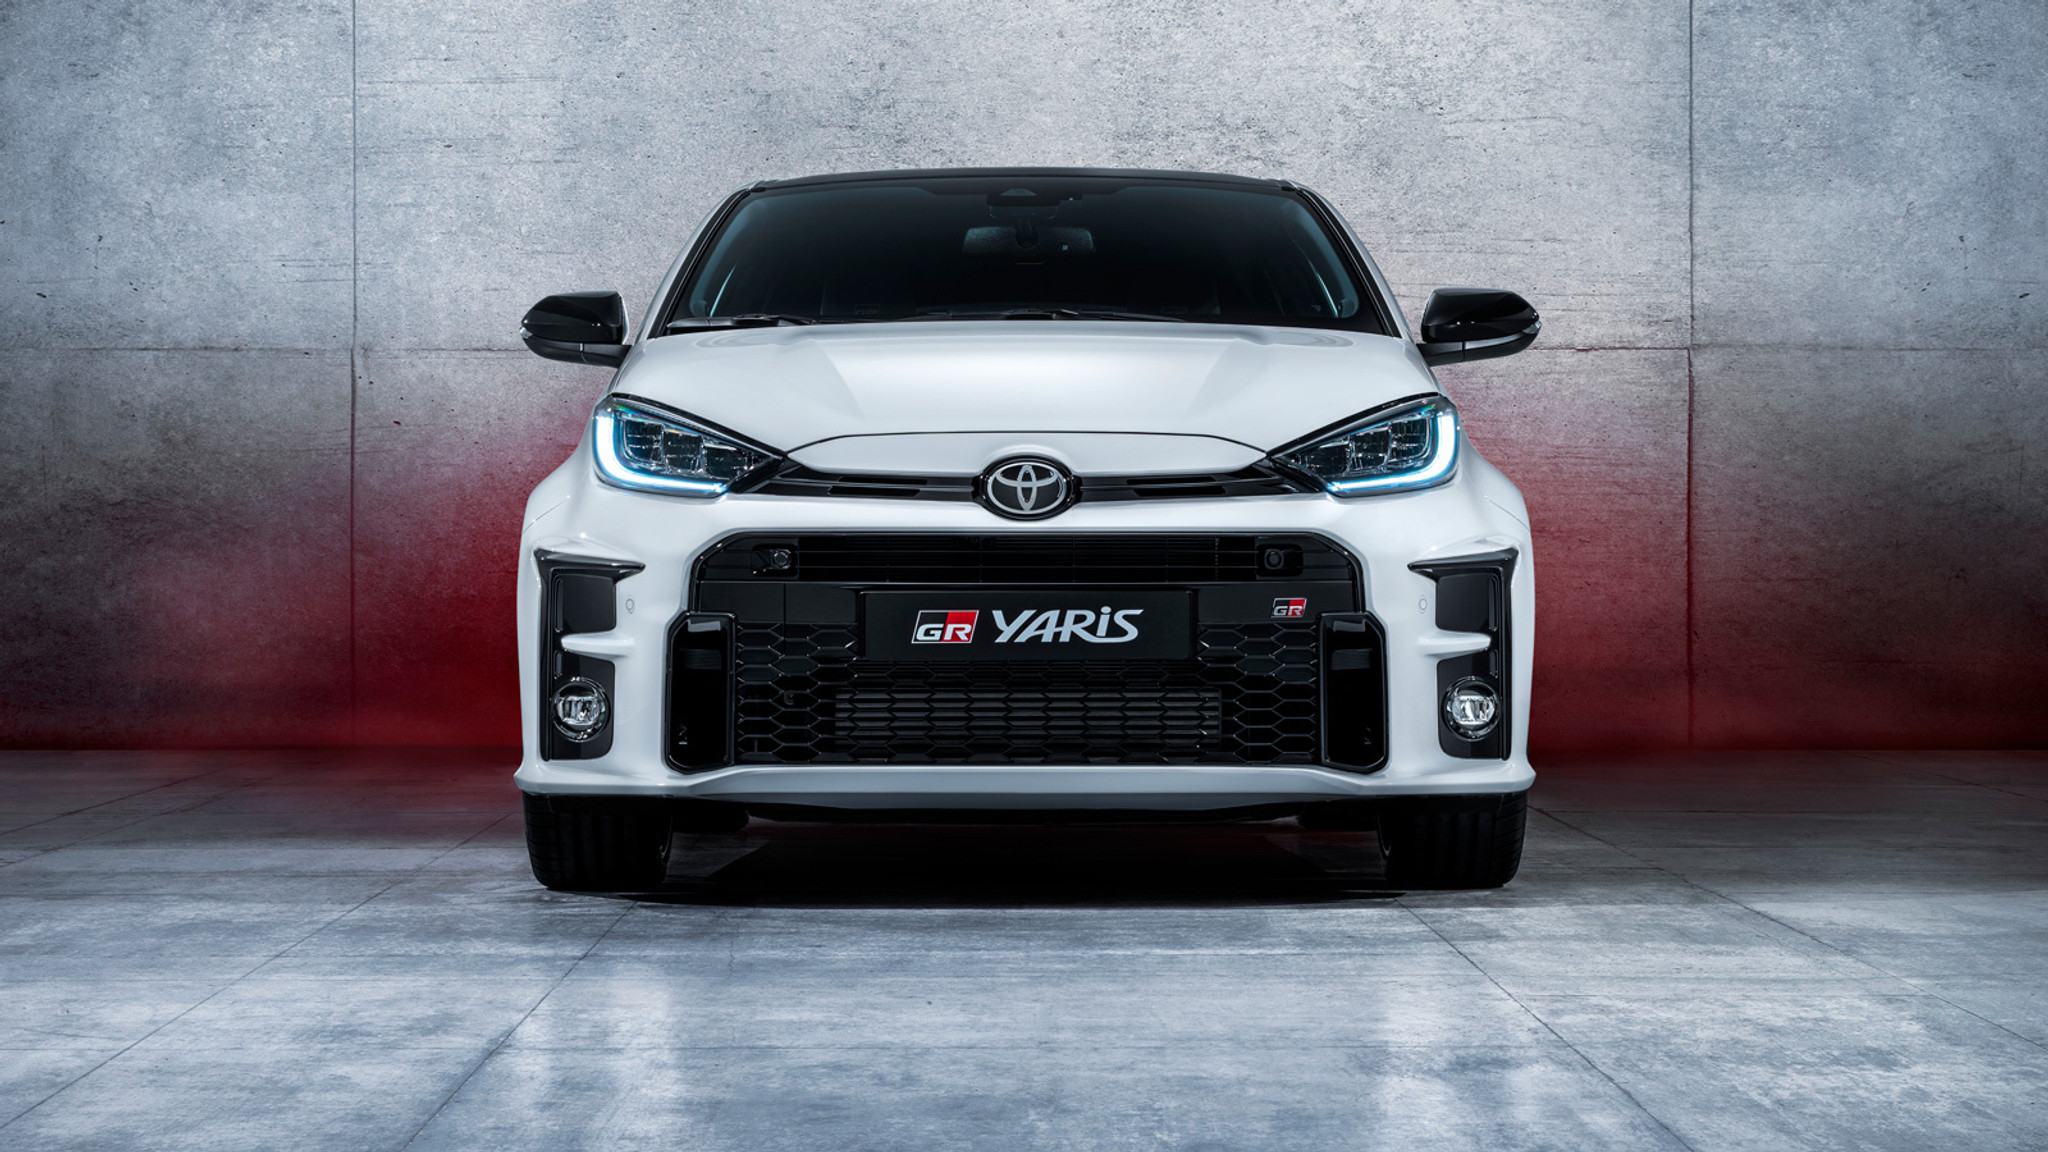 Toyota invests in GR Yaris - Press Release   Phil Gilbert Toyota